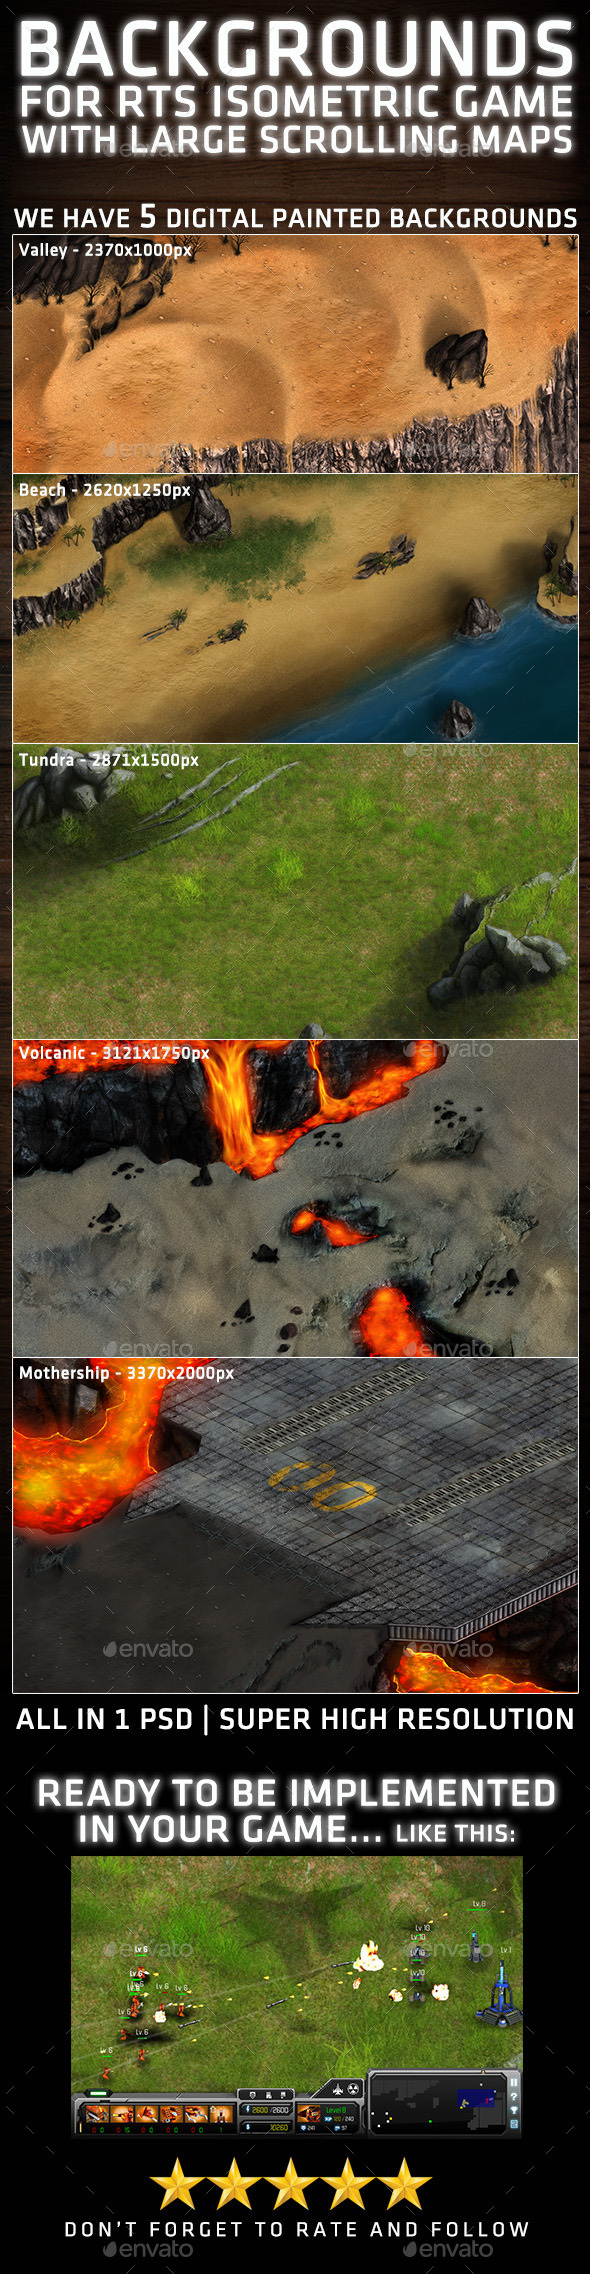 RTS Isometric Background - Backgrounds Game Assets